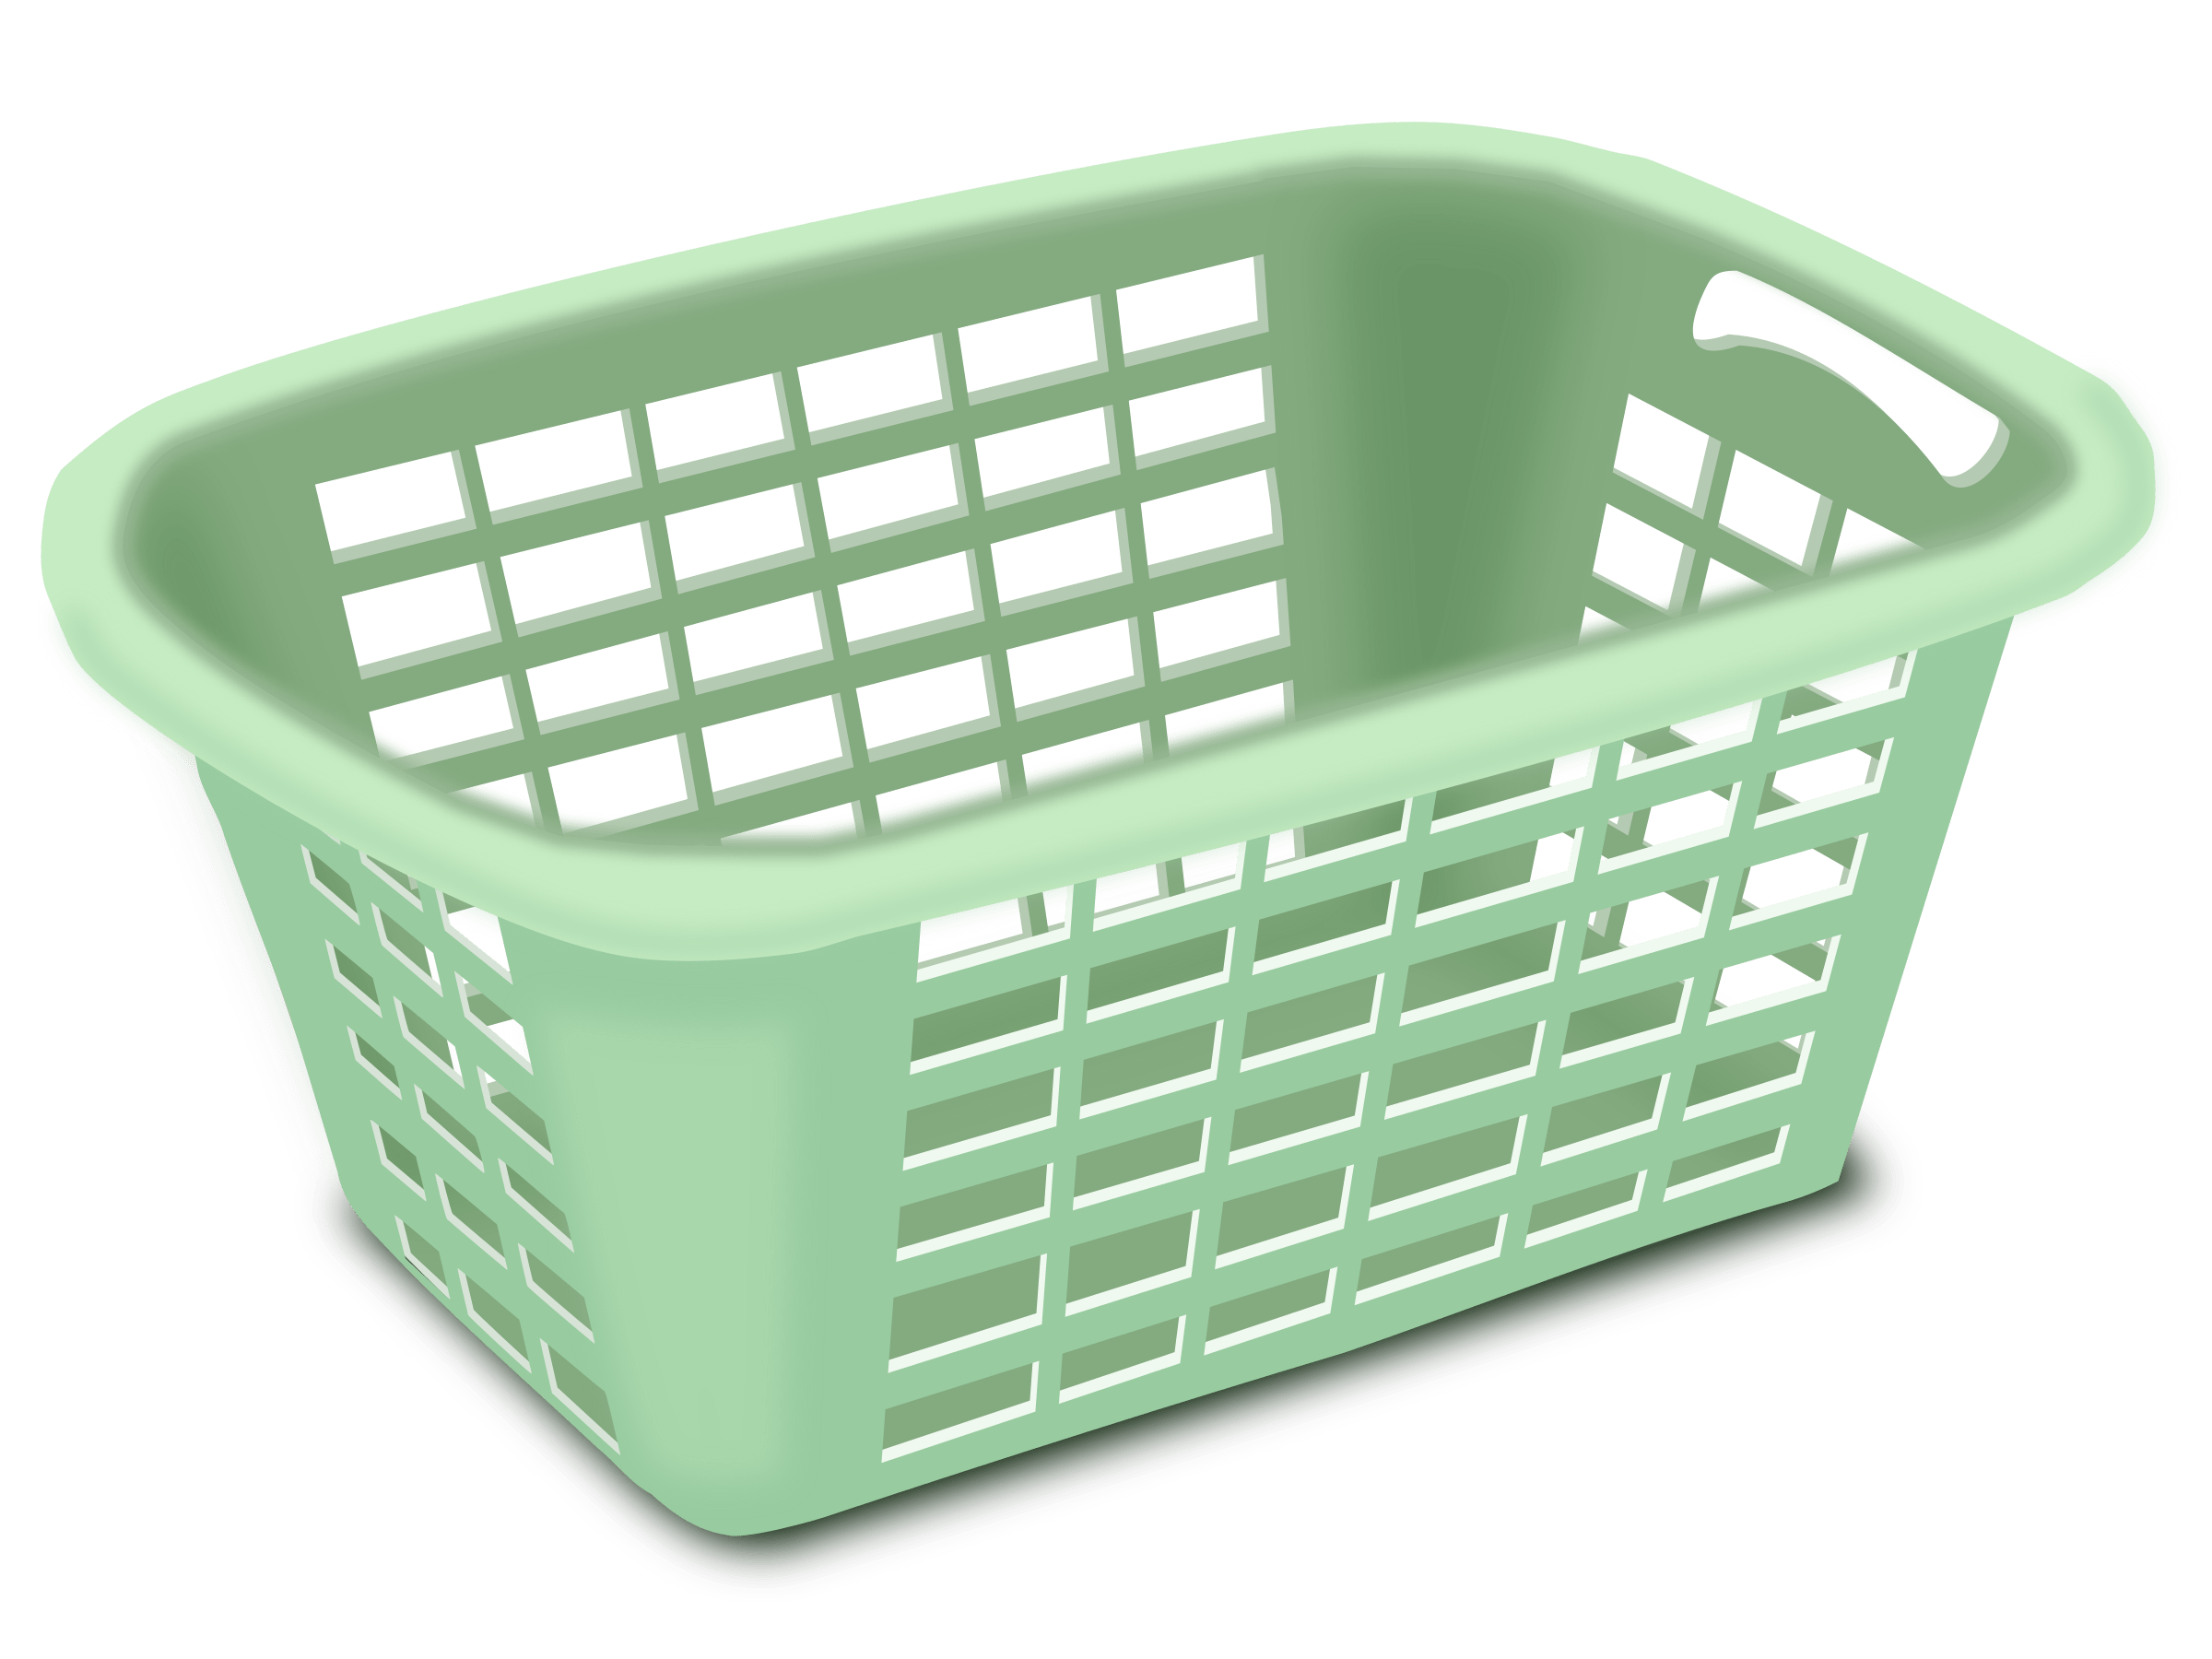 Basket clipart water.